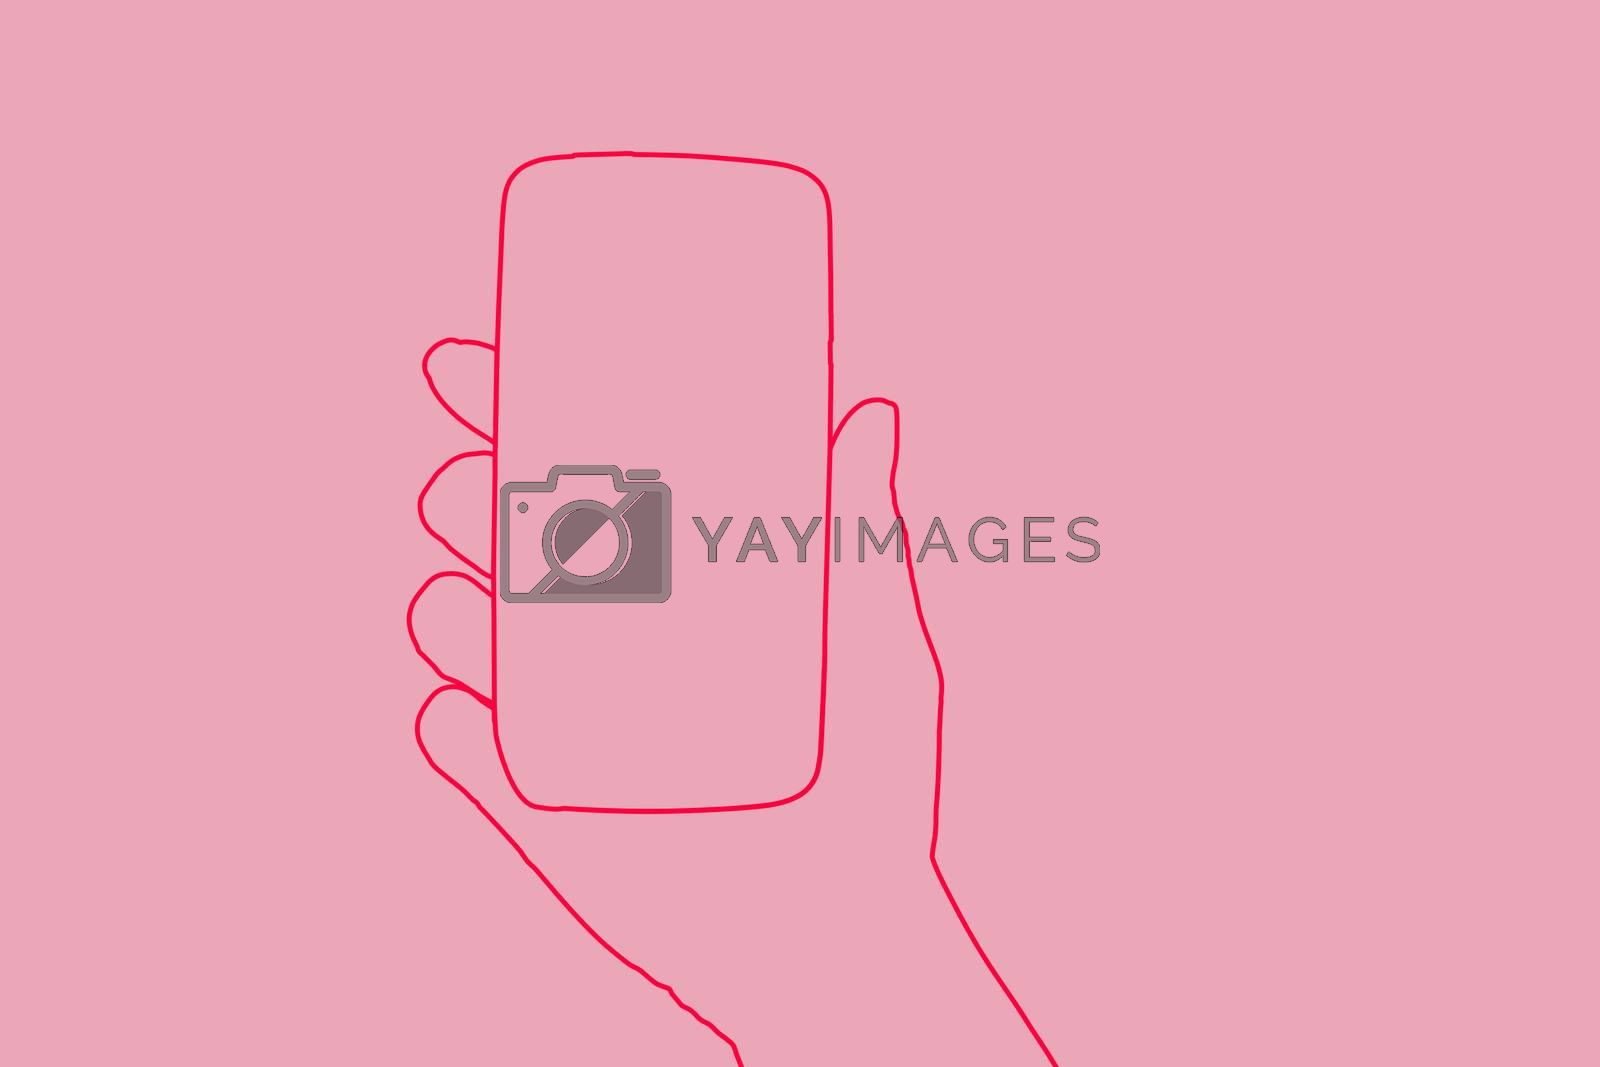 Smartphone. Female hand holding smartphone in hand. Illustration in pink. Woman and technology, feminine technology.